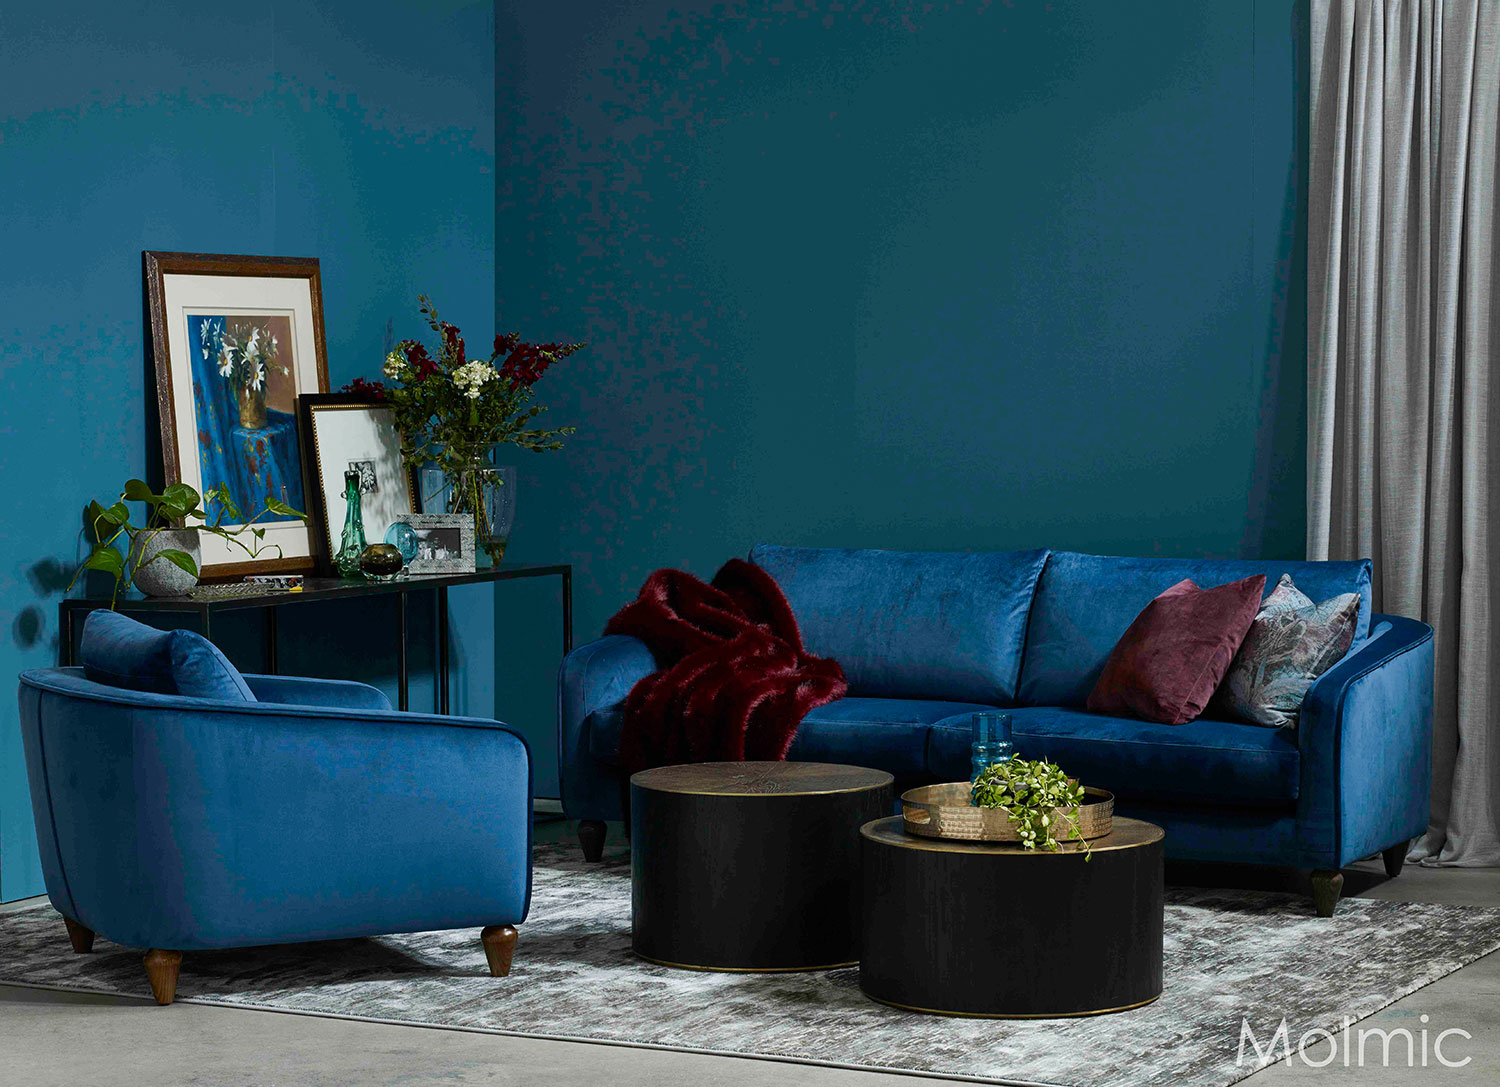 Montana 3 seater sofa in Glamour Teal fabric with Chair and Star Drums